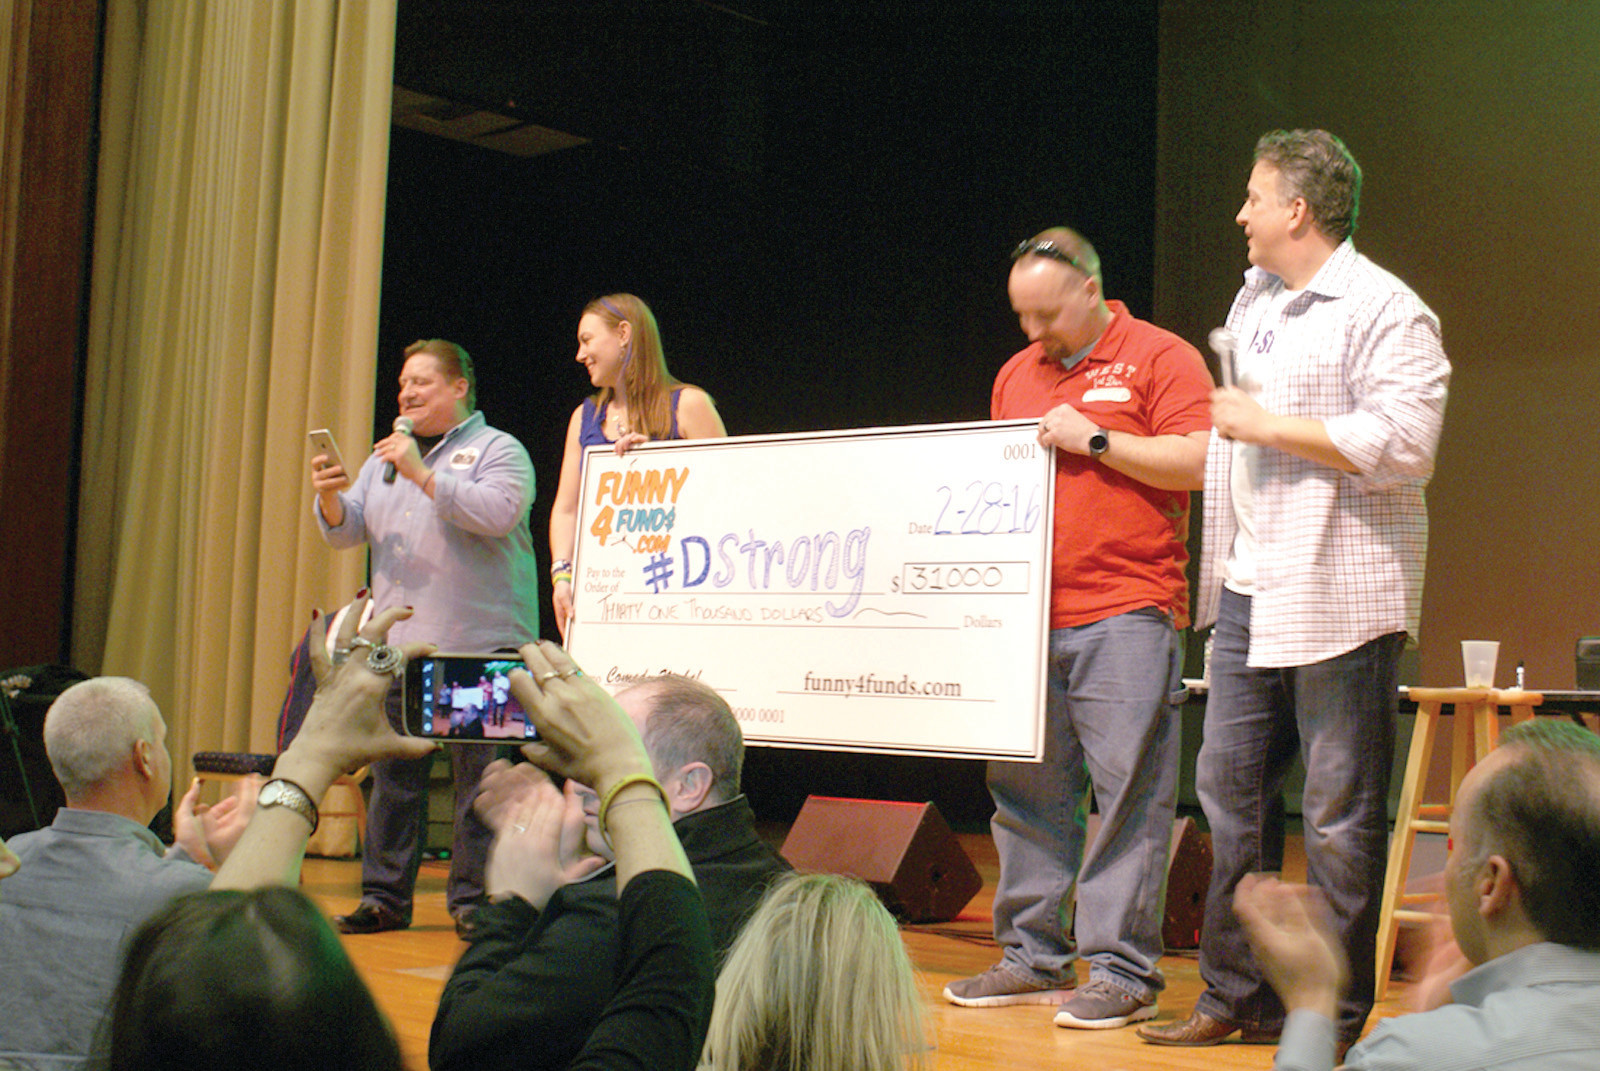 THE BIG FINISH: The big finish at the DStrong fundraiser the Park Theatre on Feb. 28 was the check presentation to Dorian Murray's parents in the amount of $31,000. Pictured are Mike Murray, Melissa Murray, Christopher Murray, and Bill Simas.